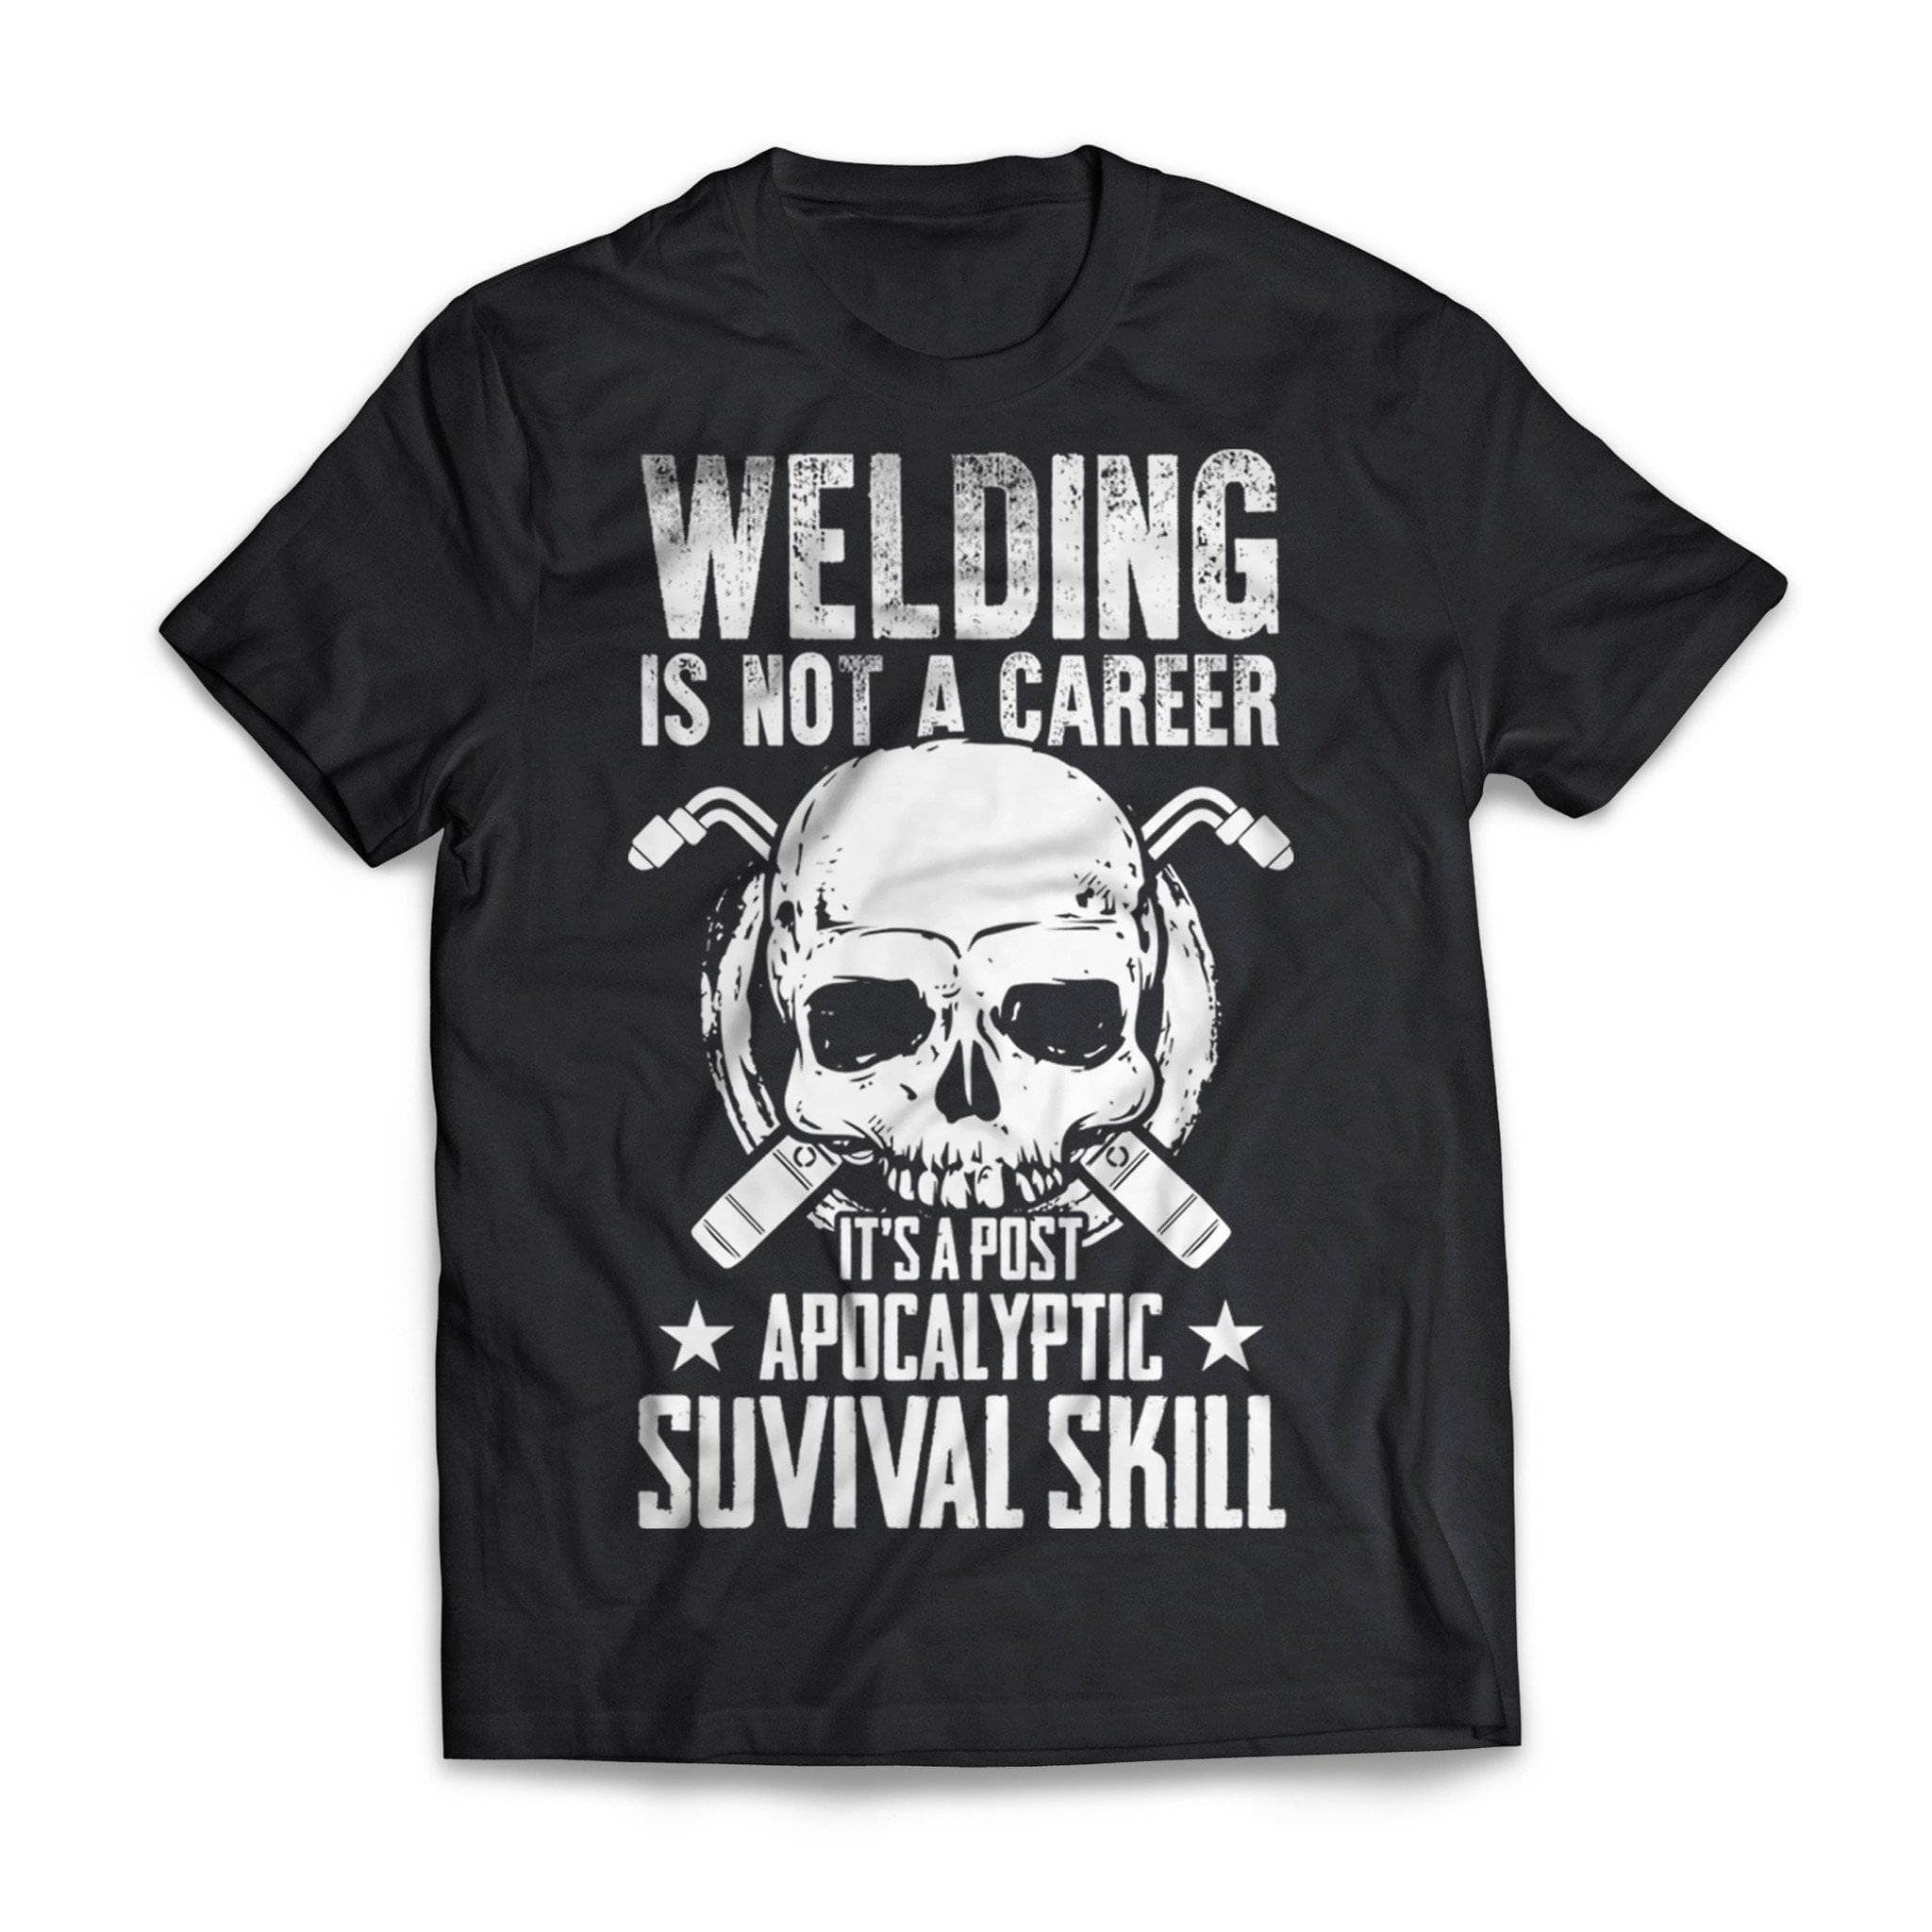 Welding Survival Skill